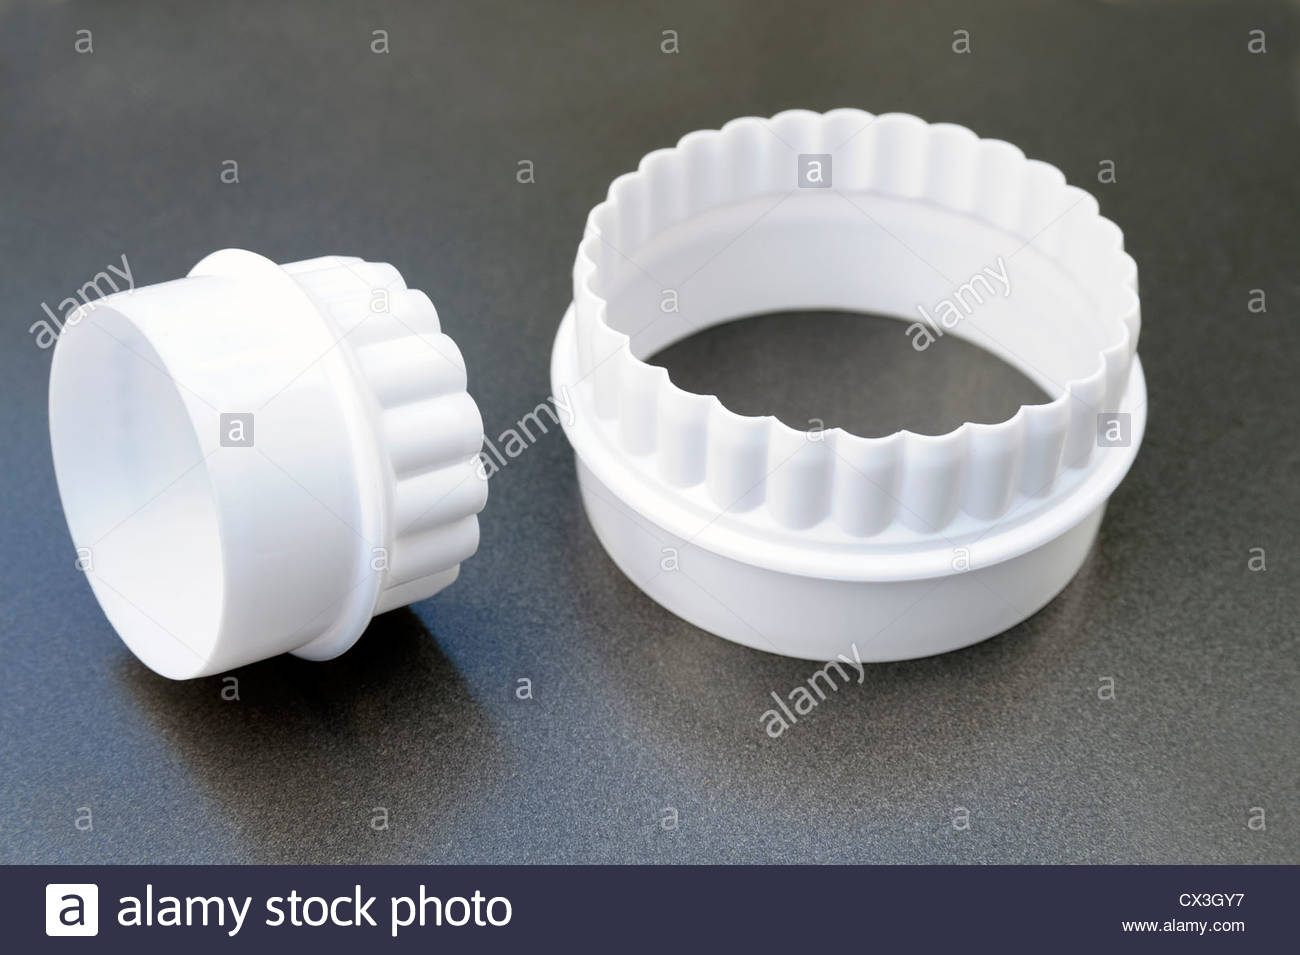 Pastry cutters. White plastic cookie cutter set. - Stock Image